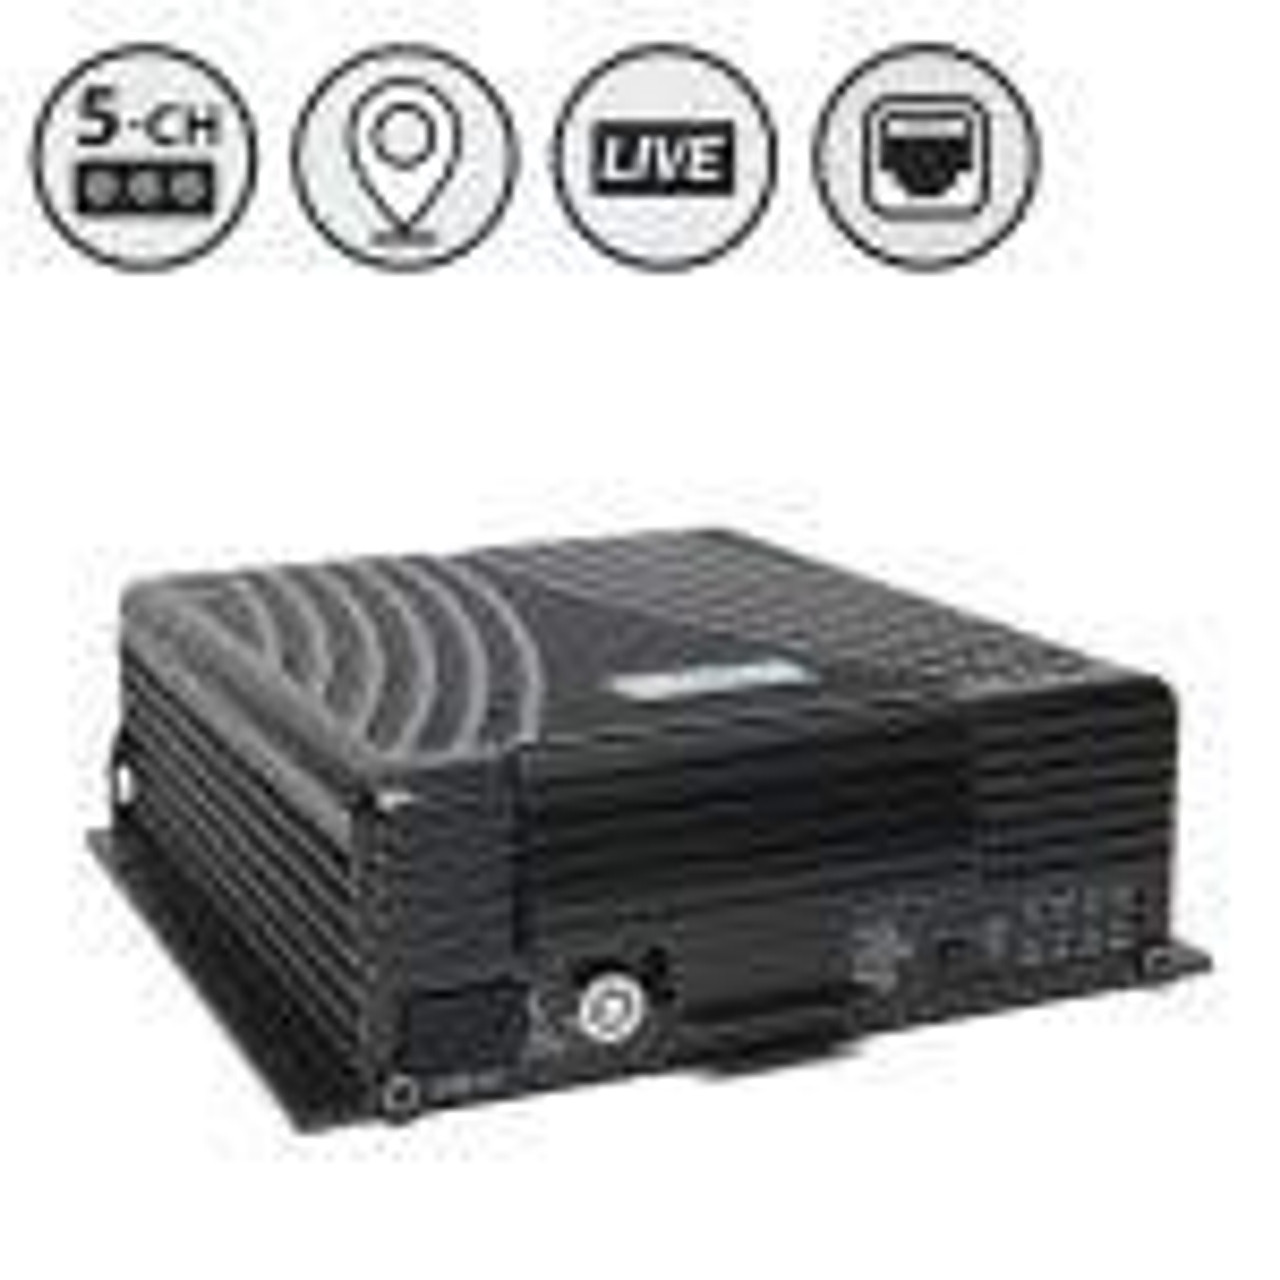 MobileMule™ 5530 | 5 Channel Mobile DVR with GPS and Live Video Remote Viewing (WiFi) (HDD), Western Digital Hard Drive